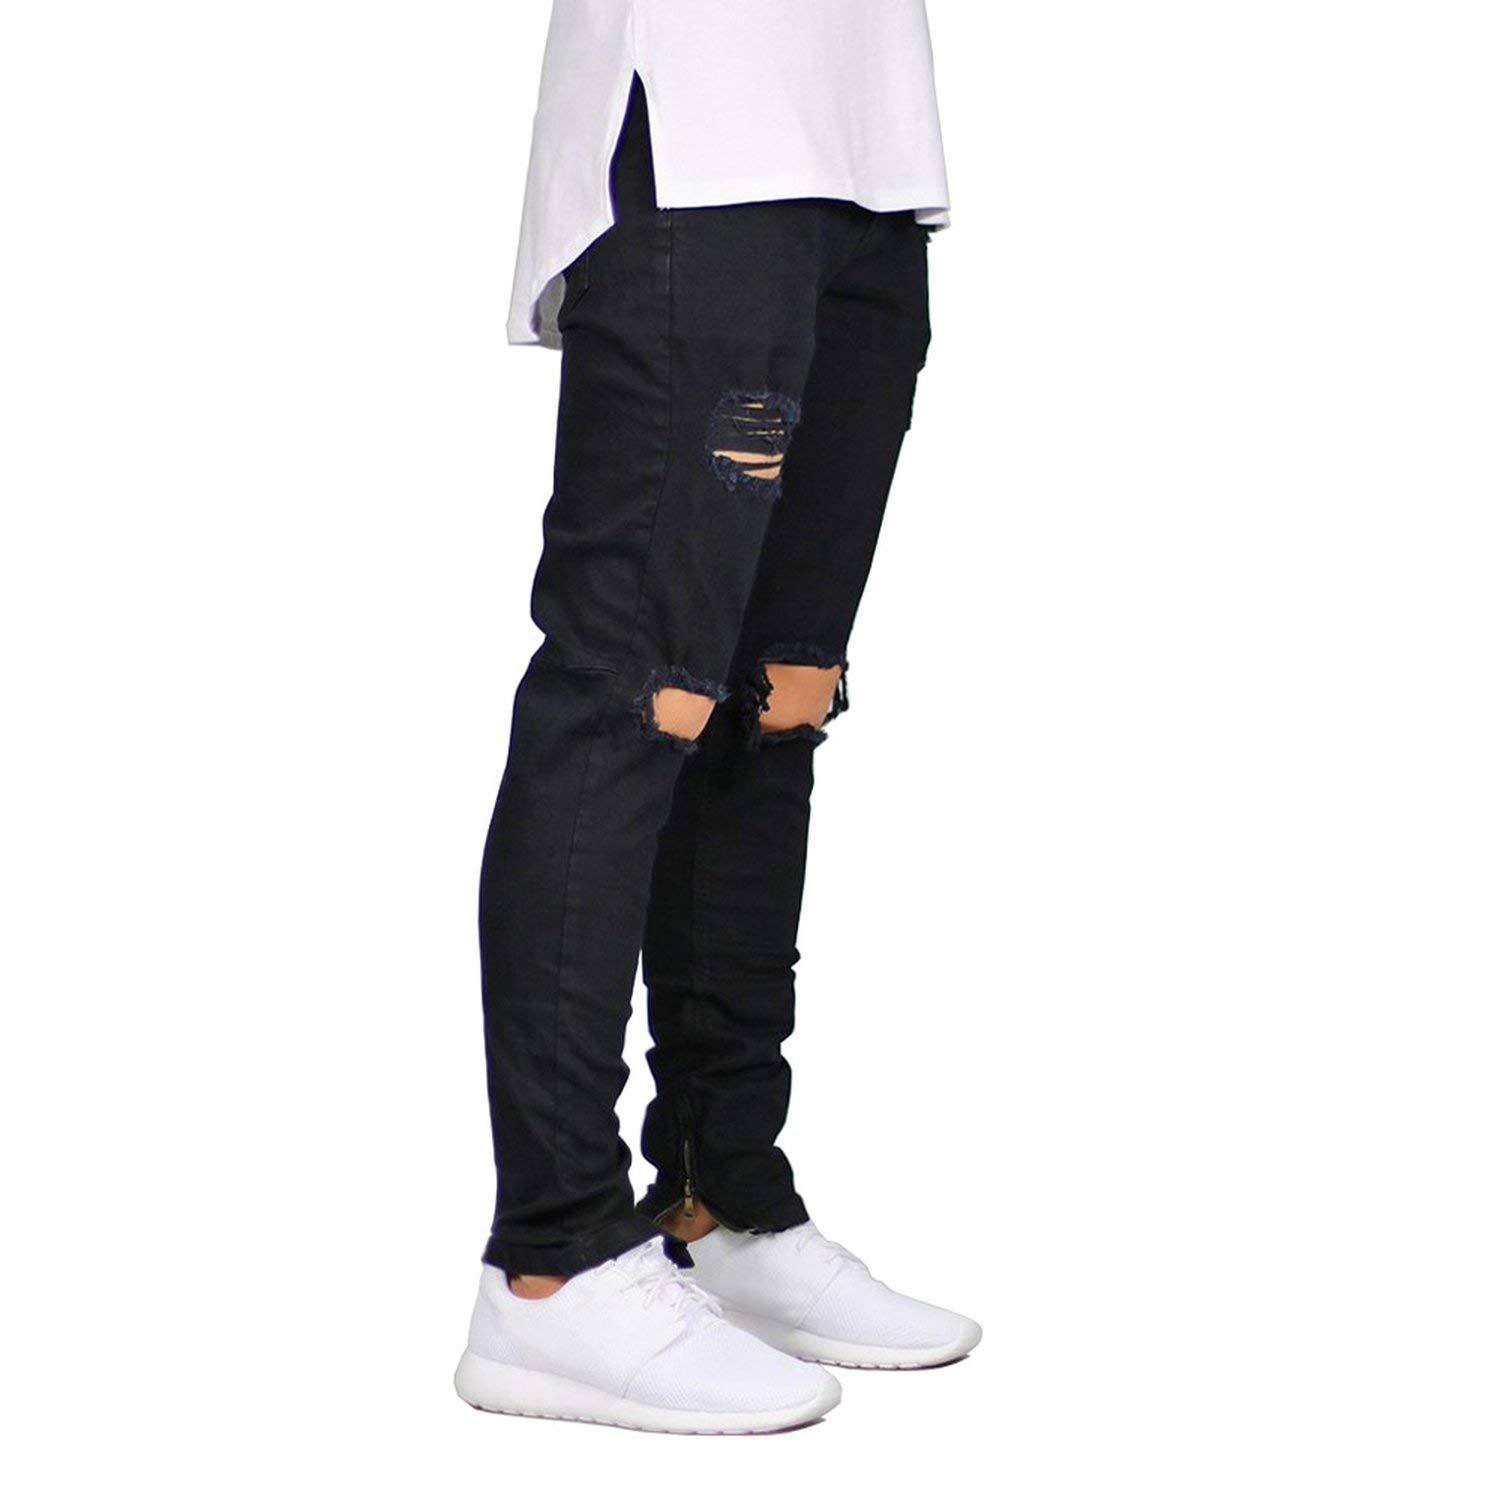 f9c26abc Get Quotations · Memoriesed Men Jeans Stretch Destroyed Ripped Design  Fashion Ankle Zipper Skinny Jeans for Men